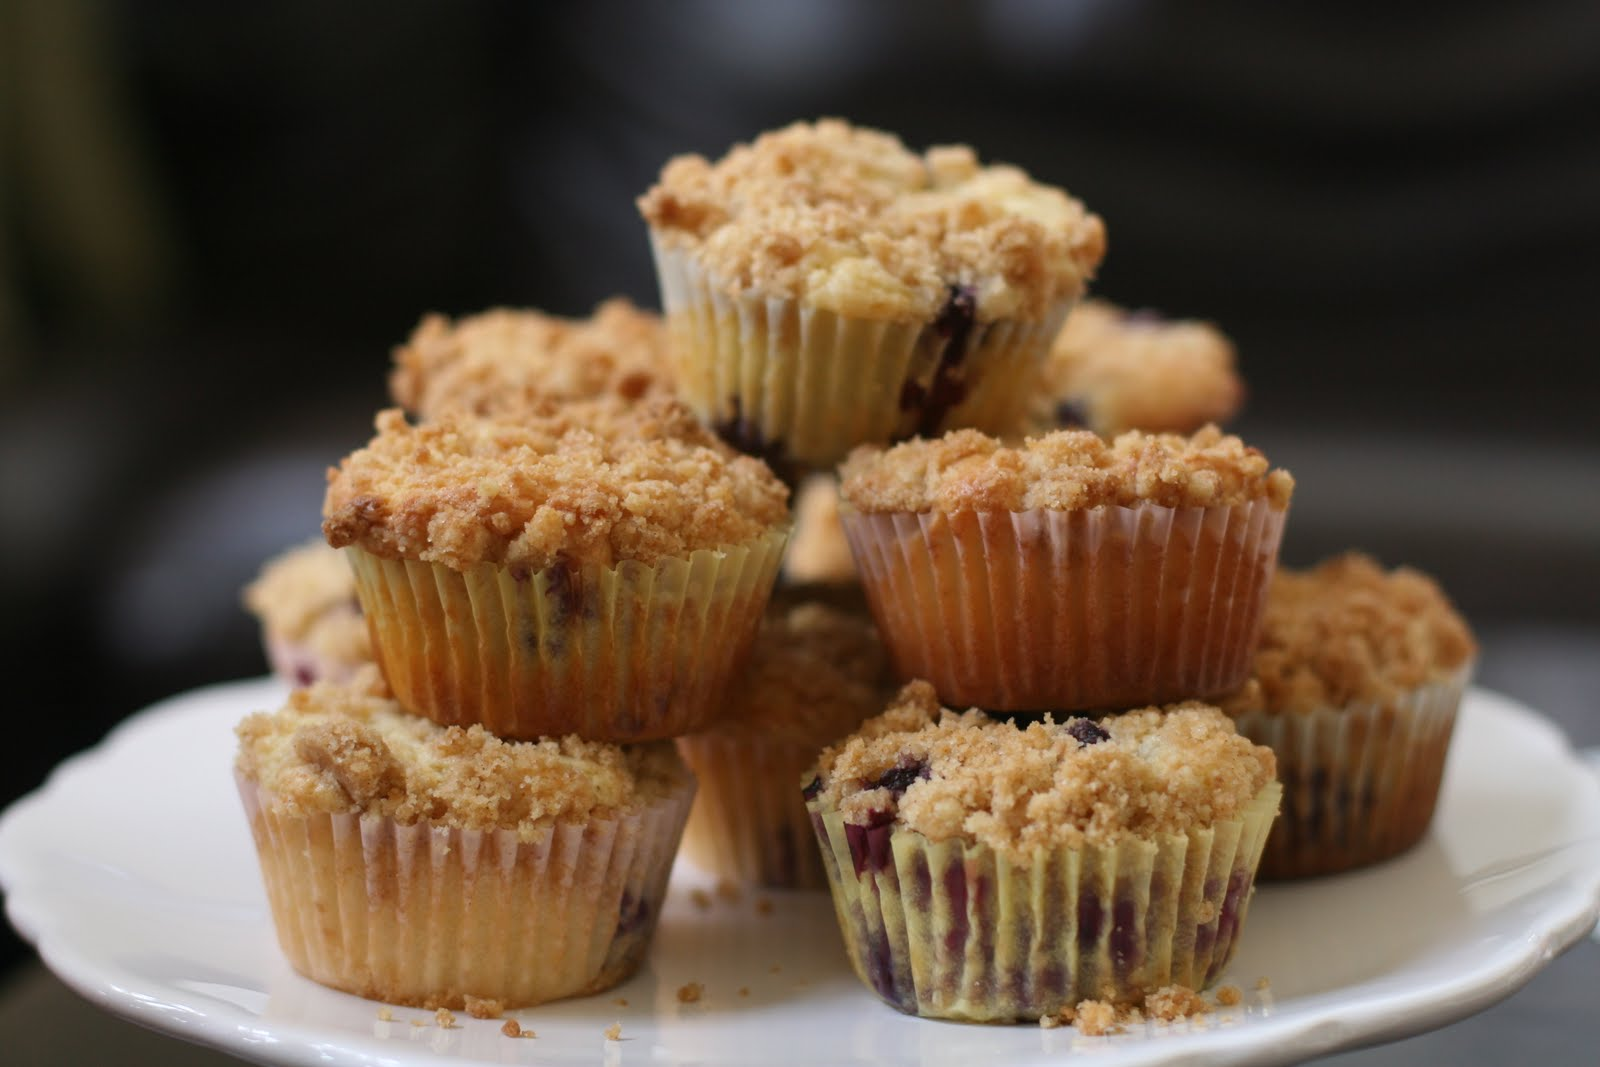 ... of Menus: Sour Cream Blueberry Crumb Cake Muffins: Luxury for a mom